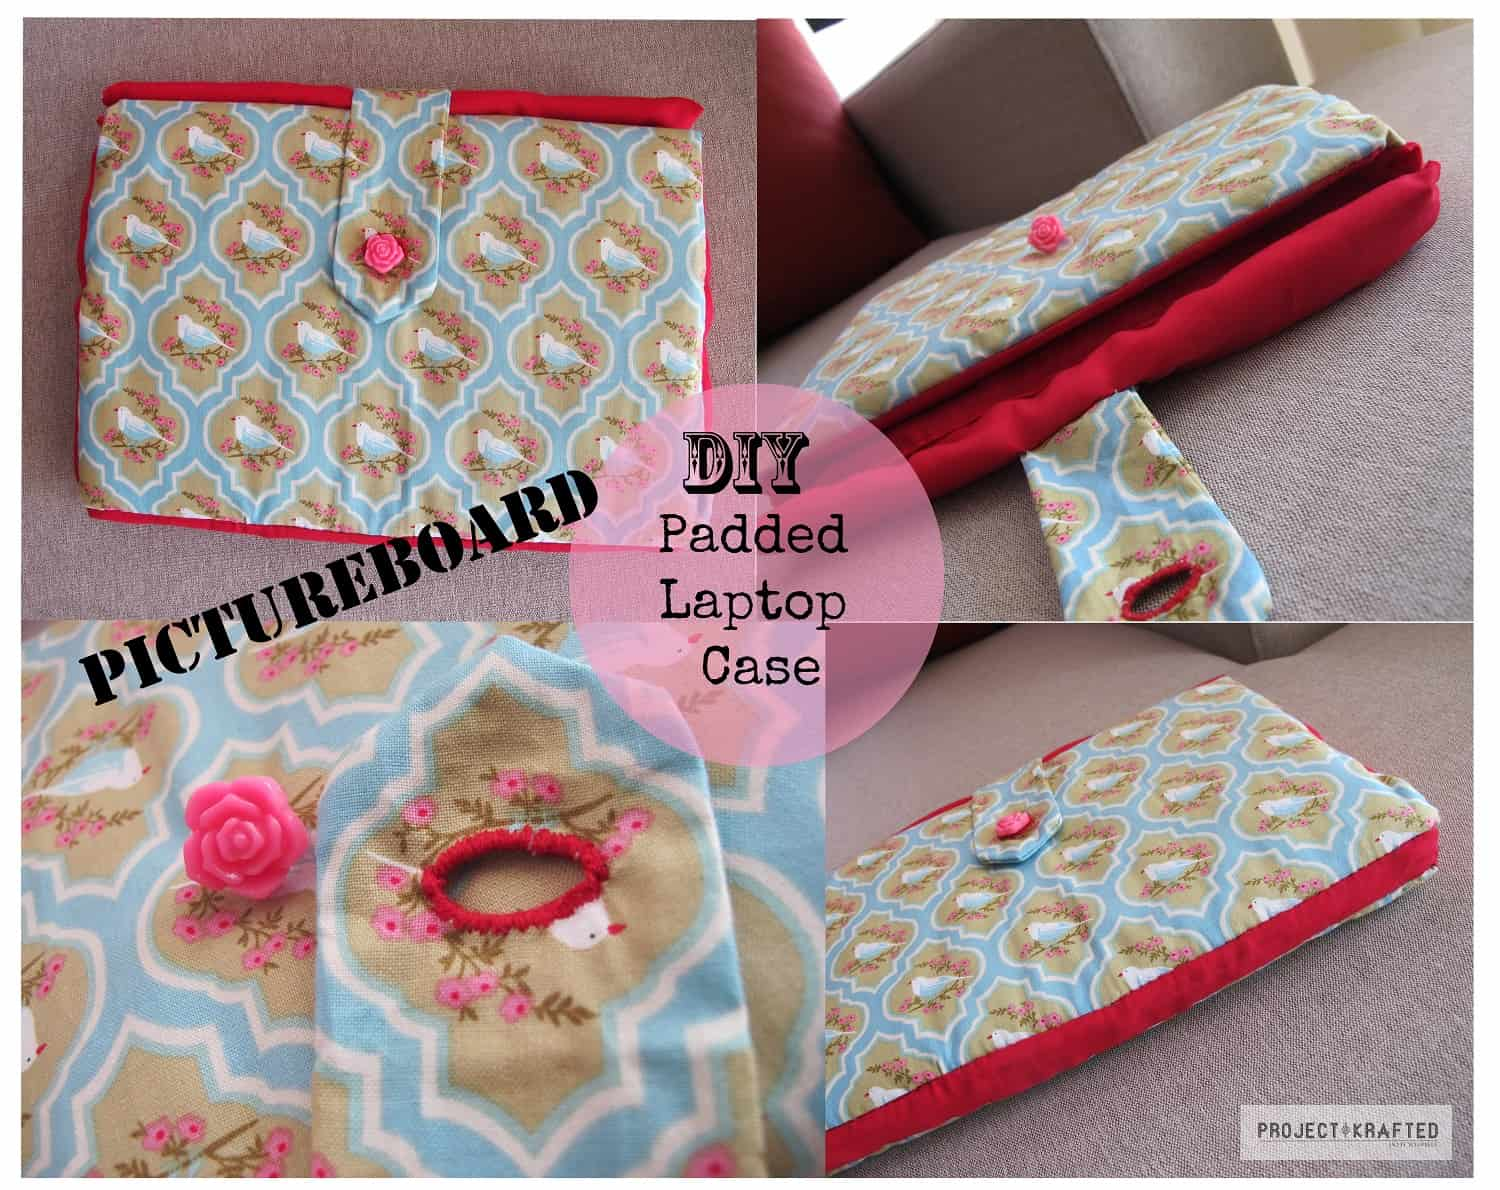 Buttoning padded laptop case